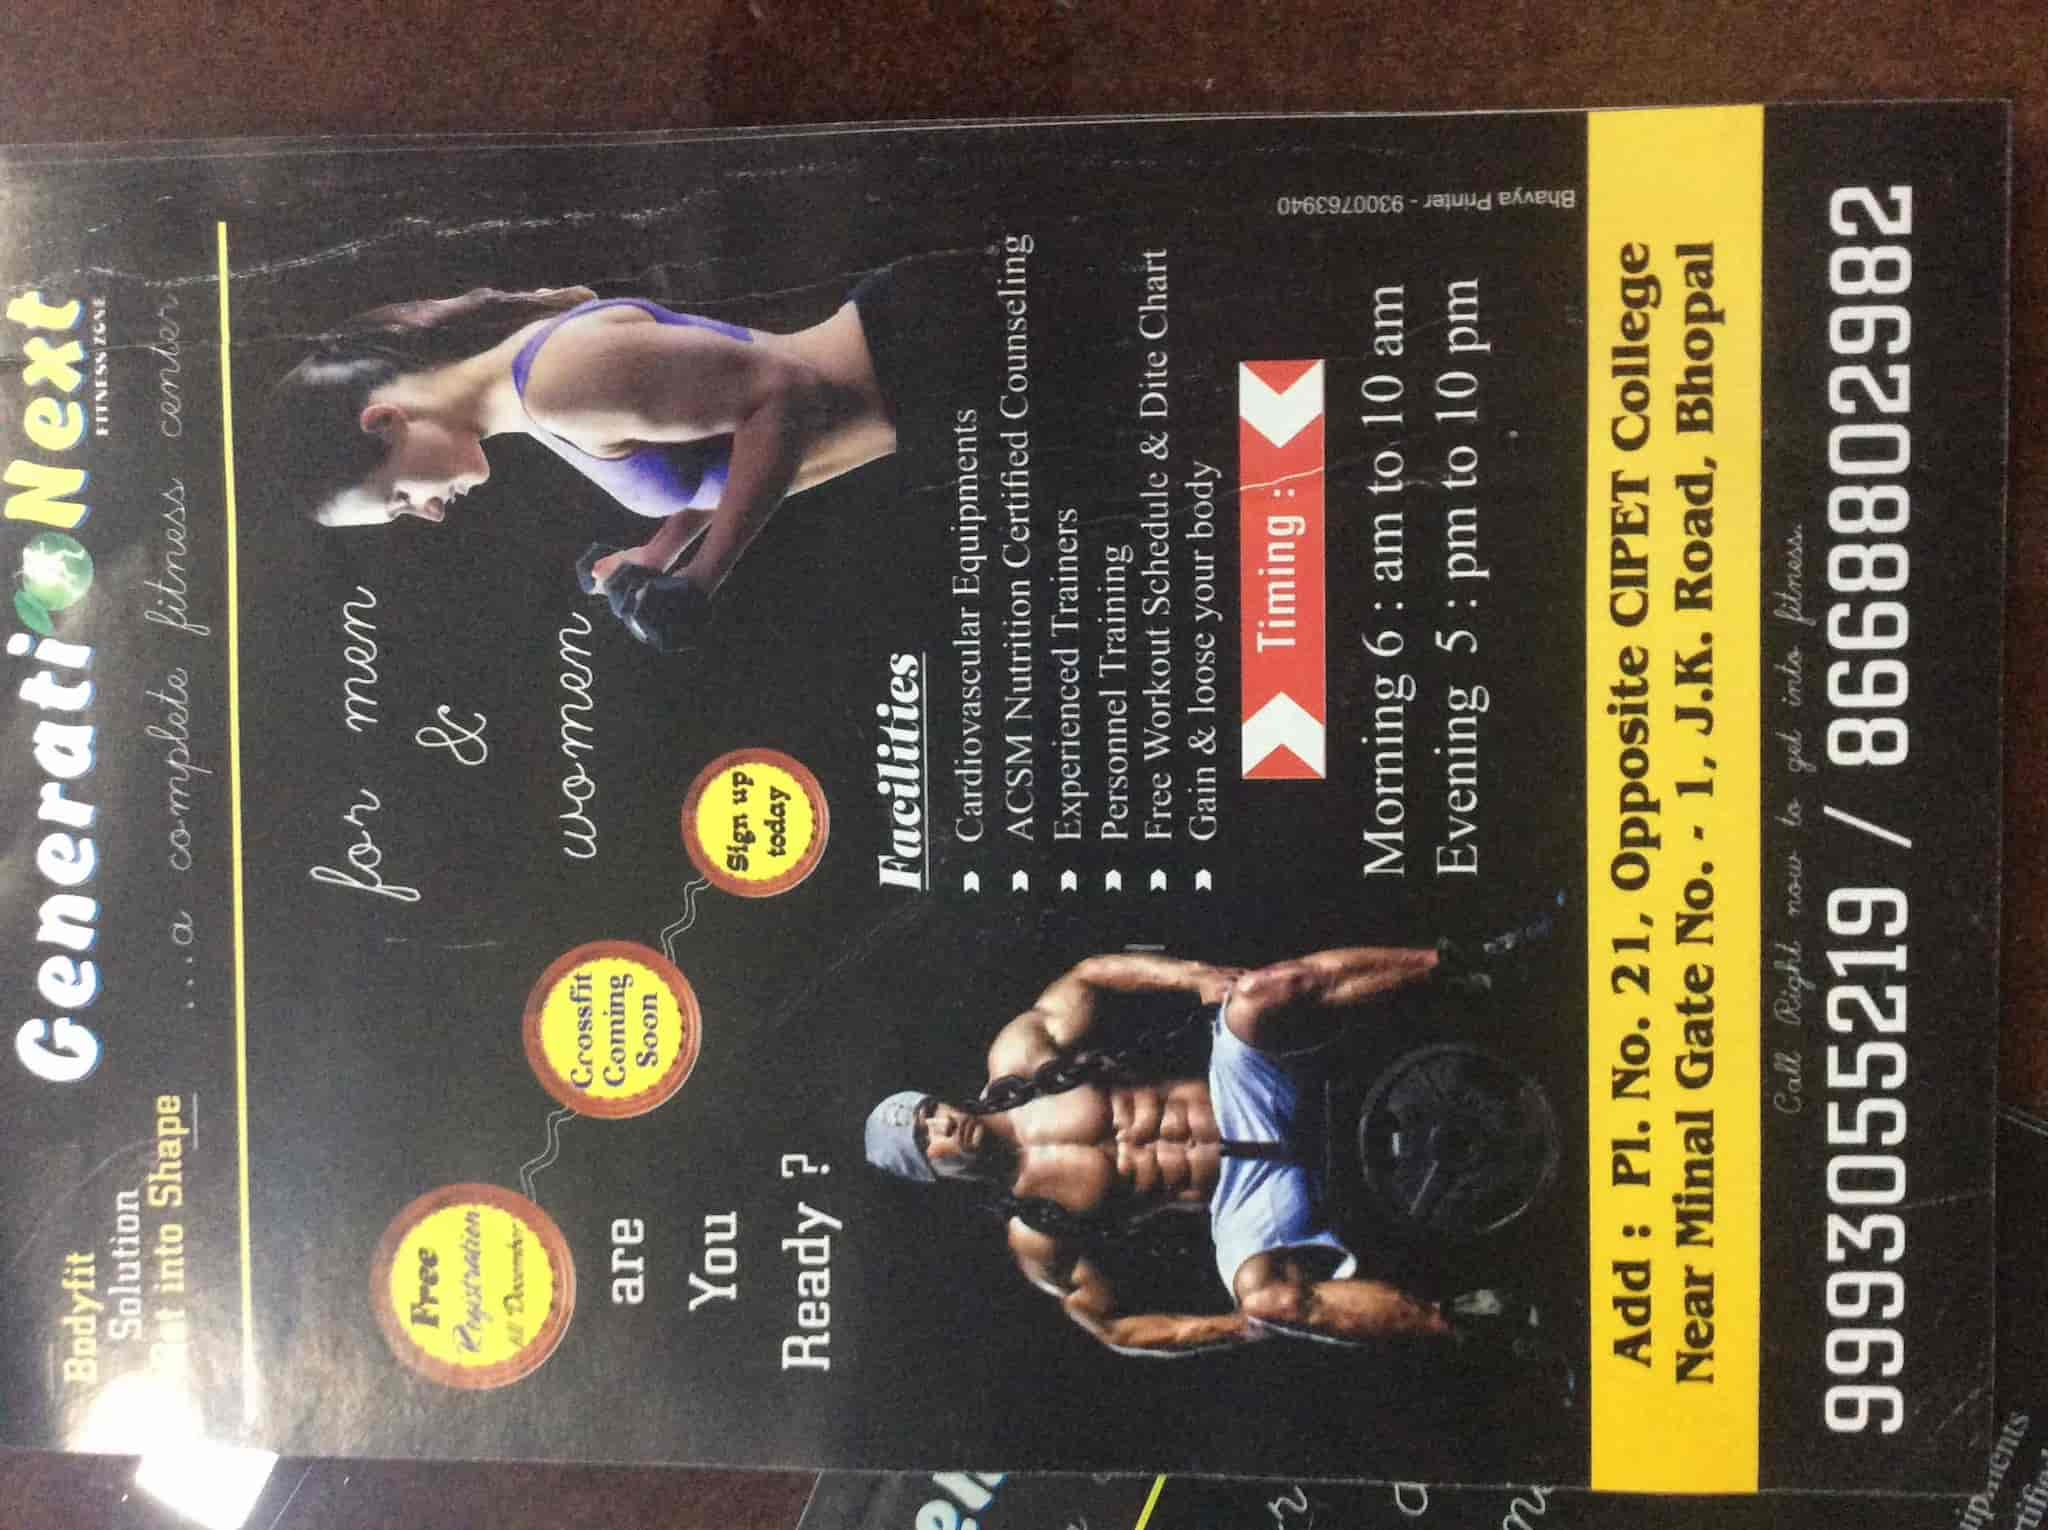 Generationext Fitness ZONE, J K Road - Gyms in Bhopal - Justdial